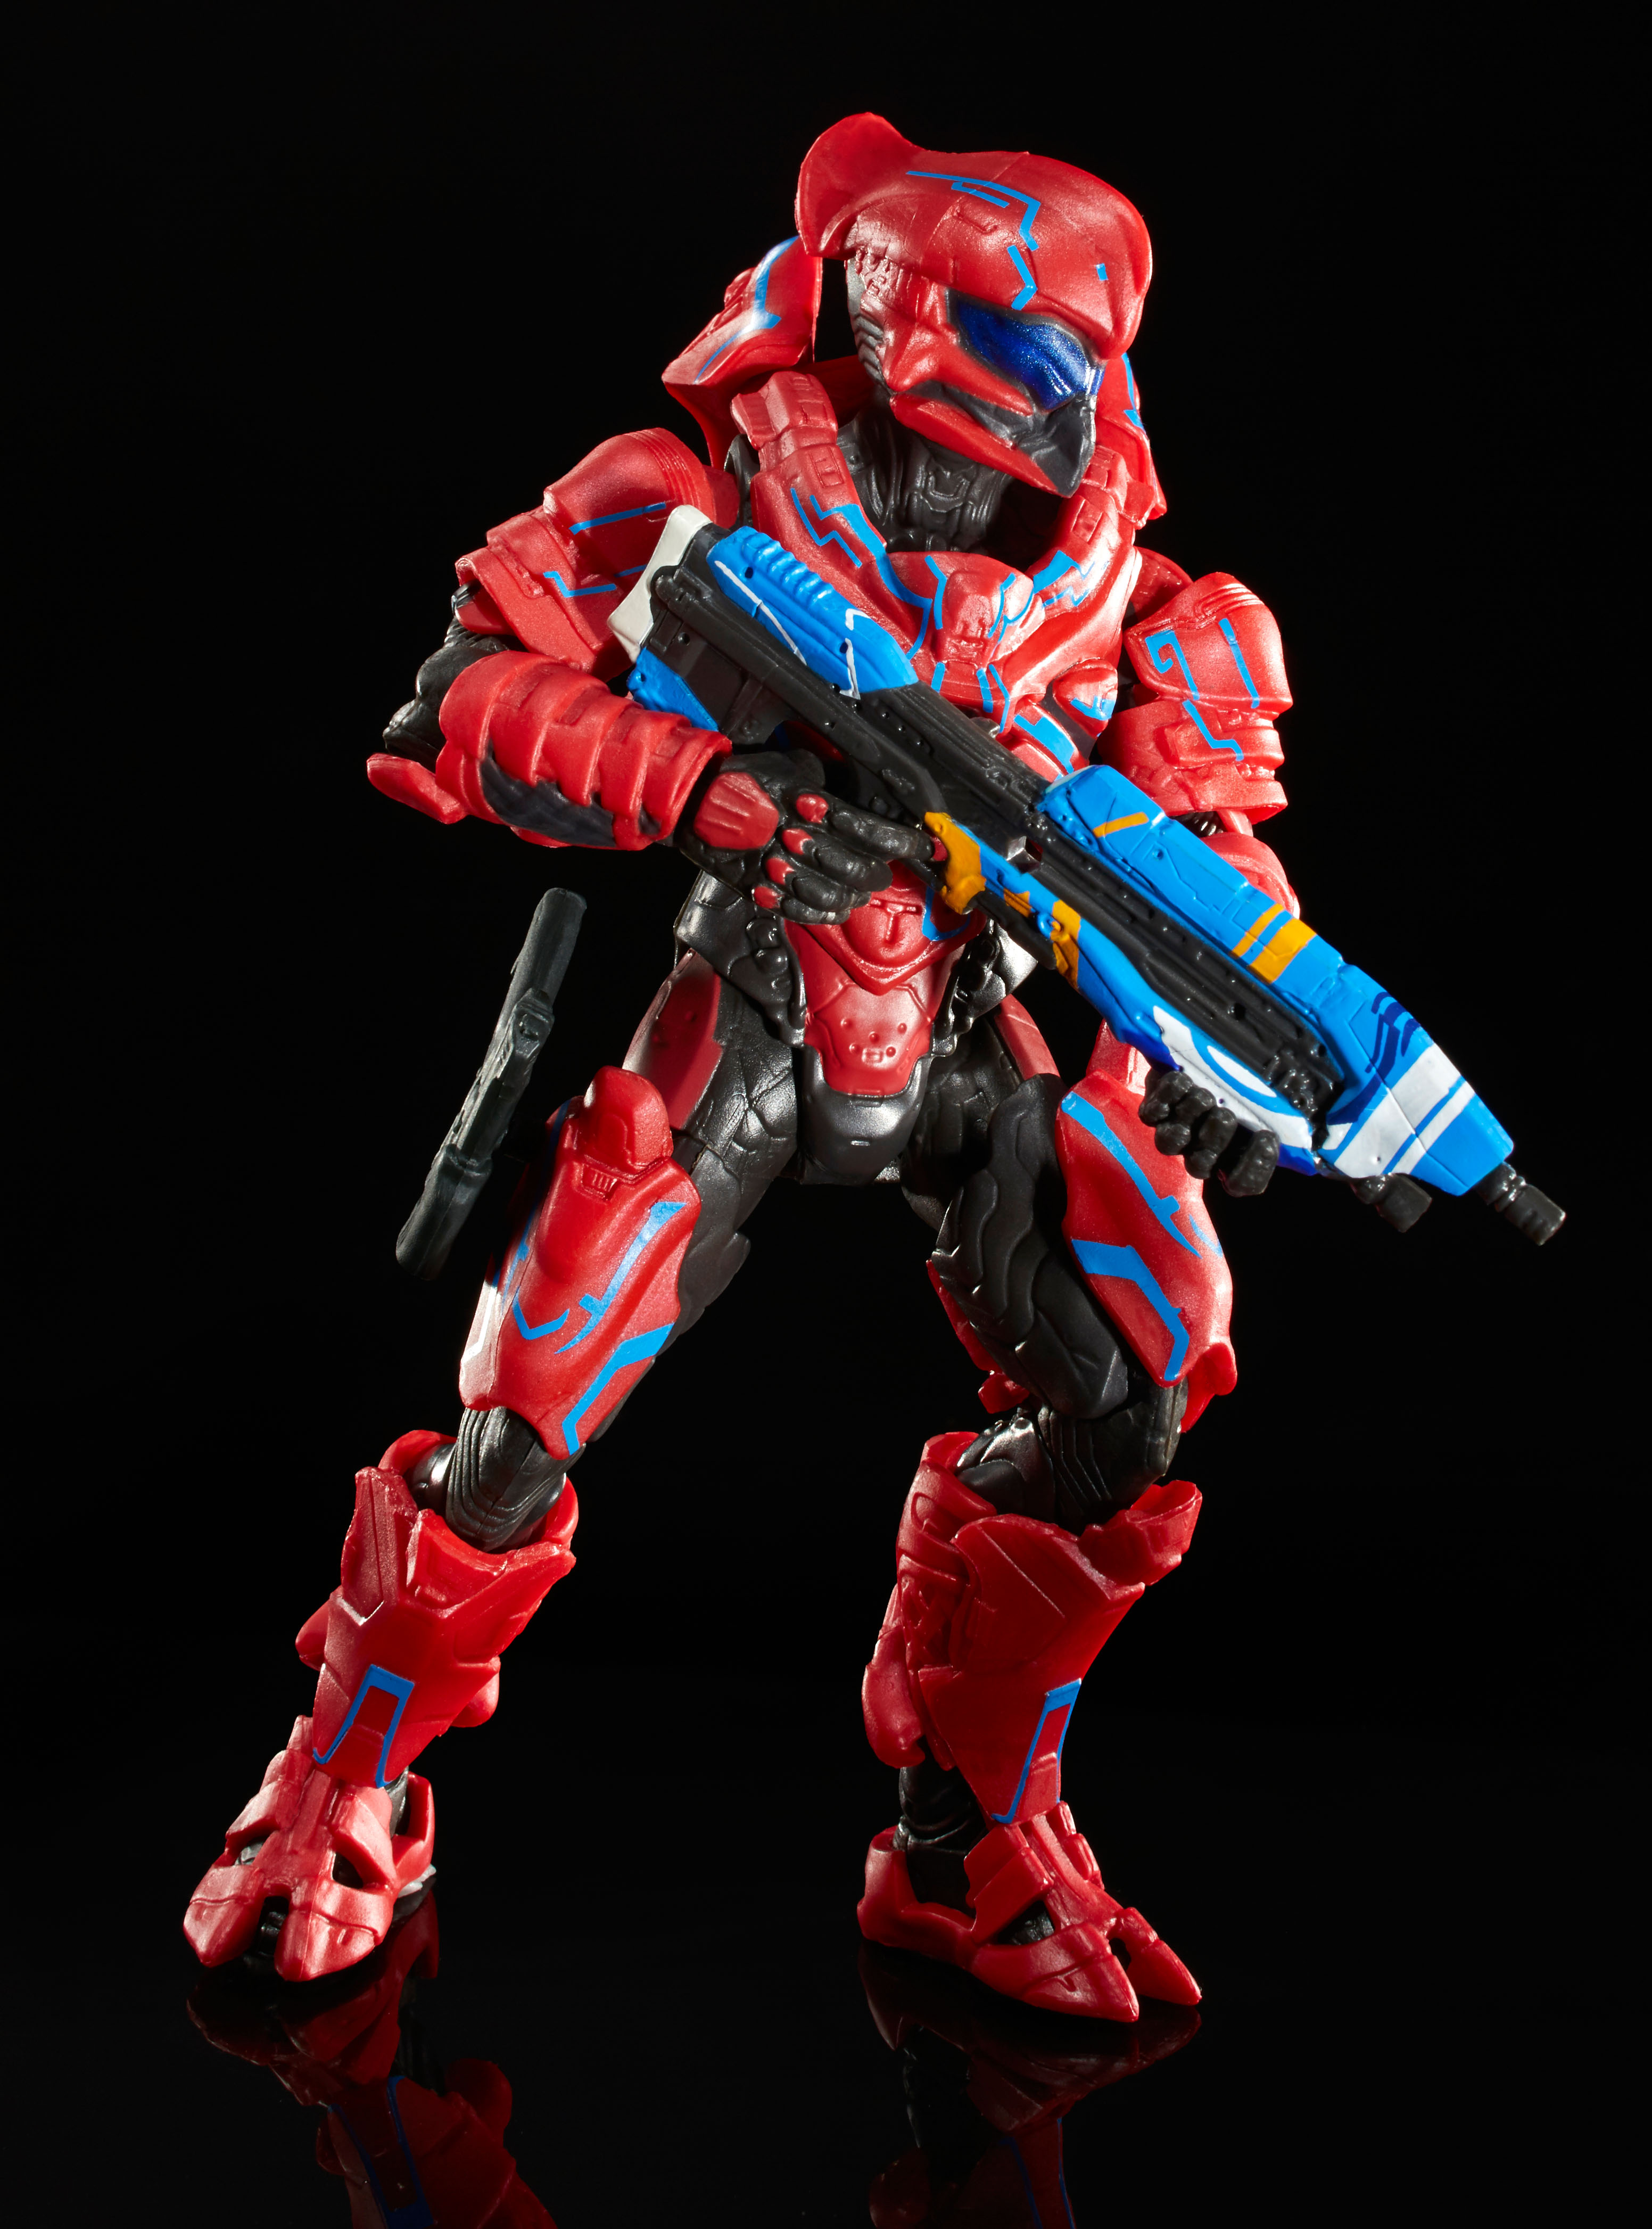 Halo Toys: By Mattel - Page 4 - The Fwoosh Forums